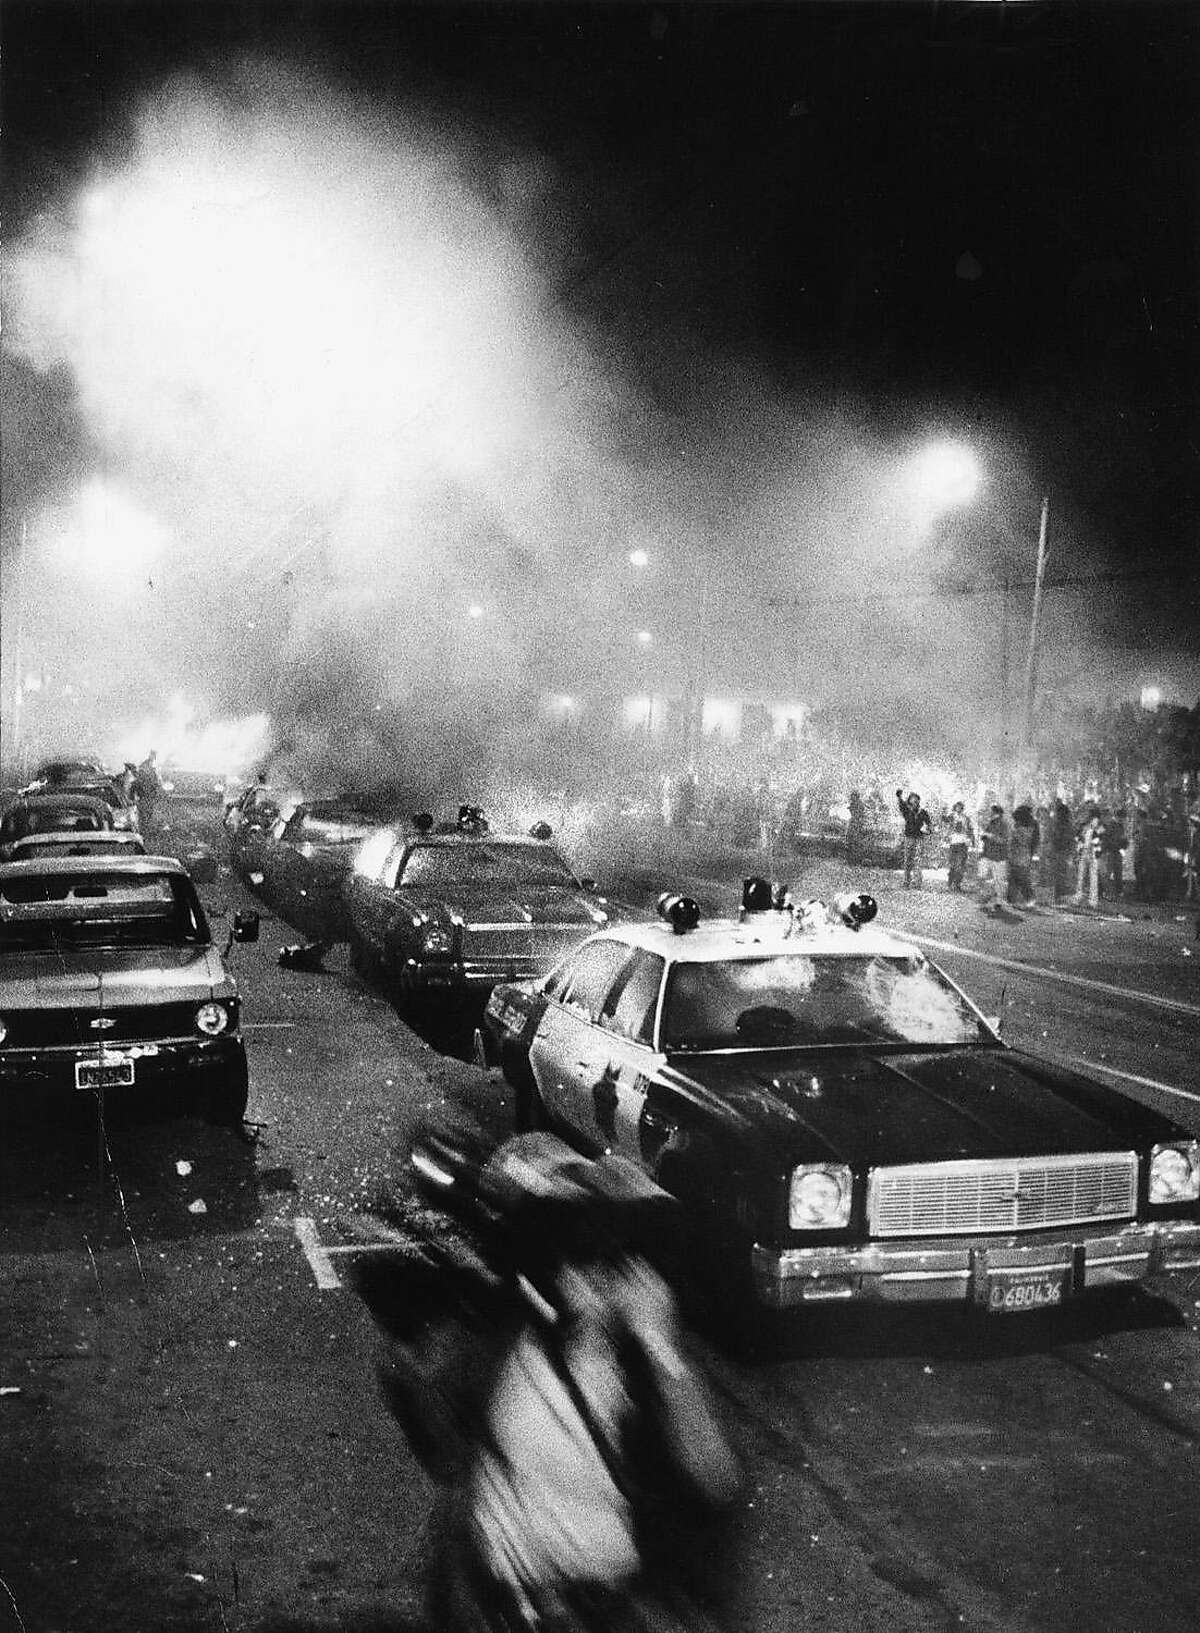 WHITE NIGHT/22MAY79/MN/STOREY - OVERALL OF THE POLICE CARS ON FIRE AT CIVIC CENTER. THE PERSON IN THE FOREGROUND WAS A NEWS CAMERAPERSON RUNNING. THE RIOT STARTED AFTER THE VERDICT FOR DAN WHITE CAME DOWN FROM THE COURT. RIOTS STARTED UP OUTSIDE CIVIC CENTER, NEAR CITY HALL. Dan White, George Moscone, Harvey Milk. PHOTO BY JOHN STOREY WHITE NIGHT RIOTS jonestown40